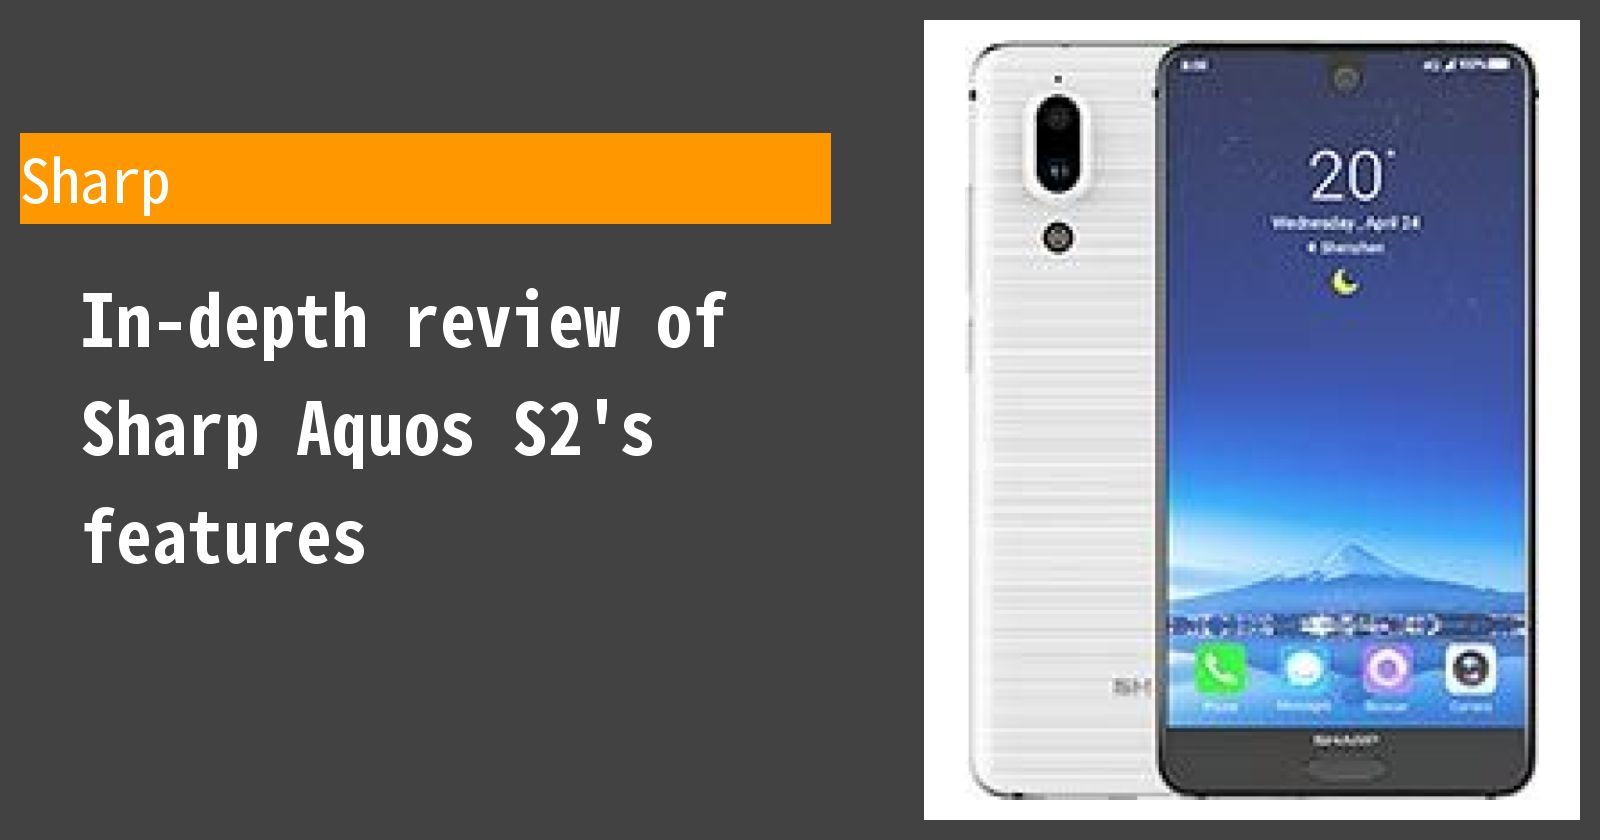 😱 Sharp aquos s2 android update | Update Sharp Aquos S2 To